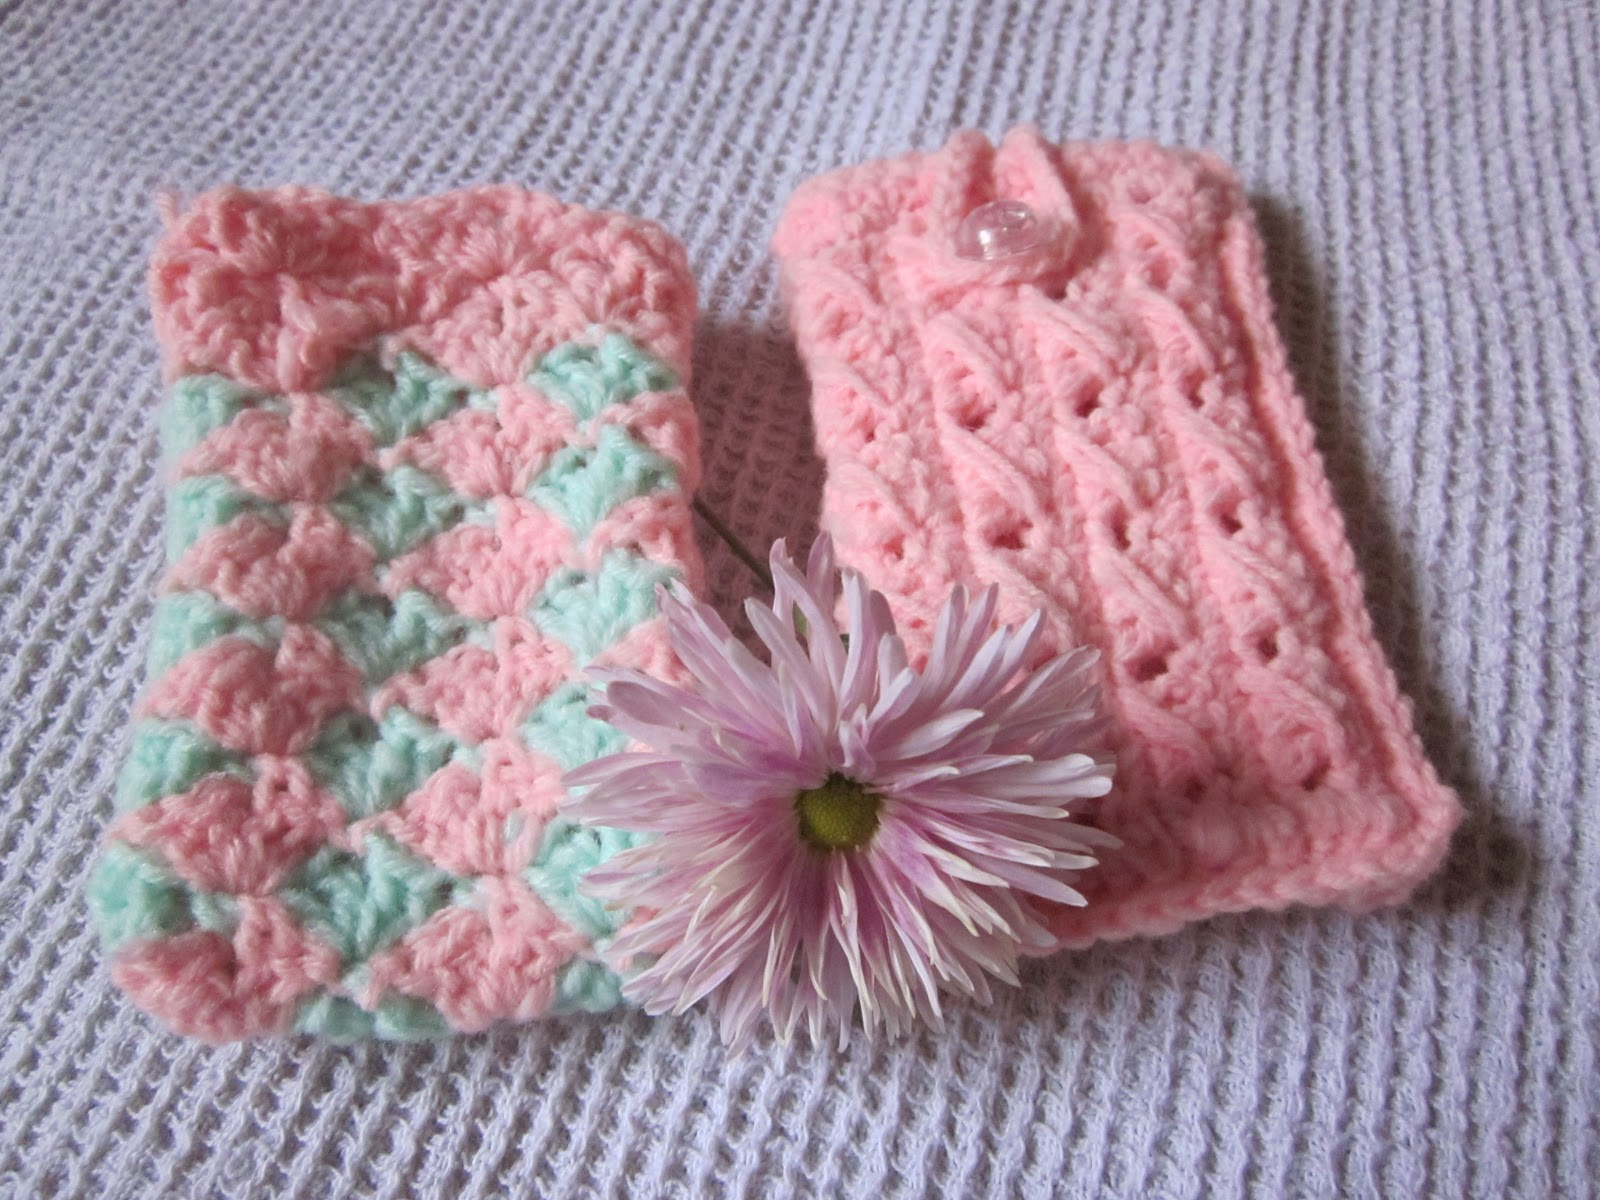 Crochet New Stitches Pinterest : Pinterest New Crochet Patterns 2015